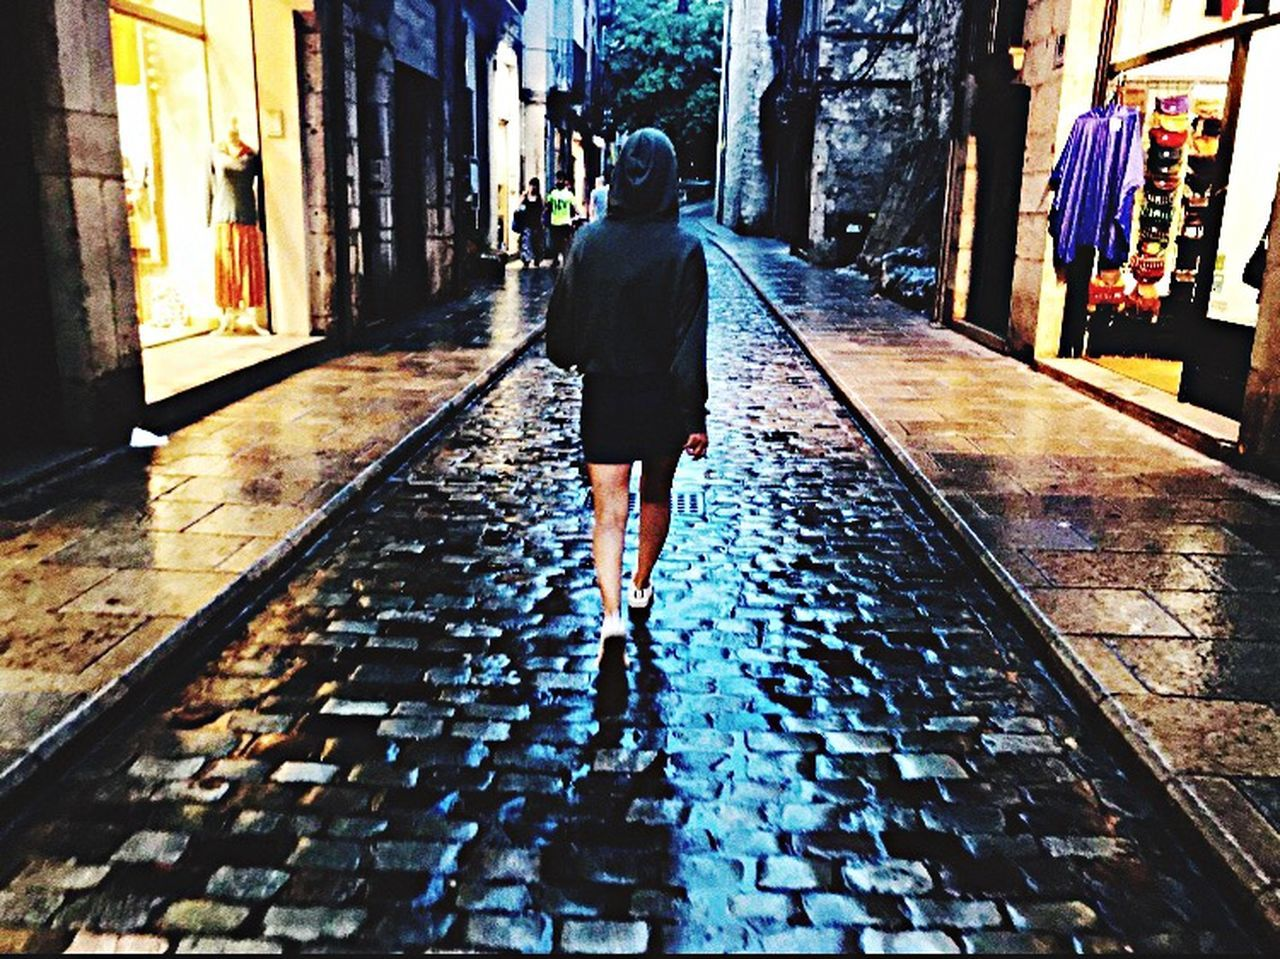 rear view, one person, architecture, full length, real people, building exterior, built structure, walking, city, lifestyles, direction, women, day, the way forward, building, leisure activity, adult, street, wet, outdoors, rain, rainy season, alley